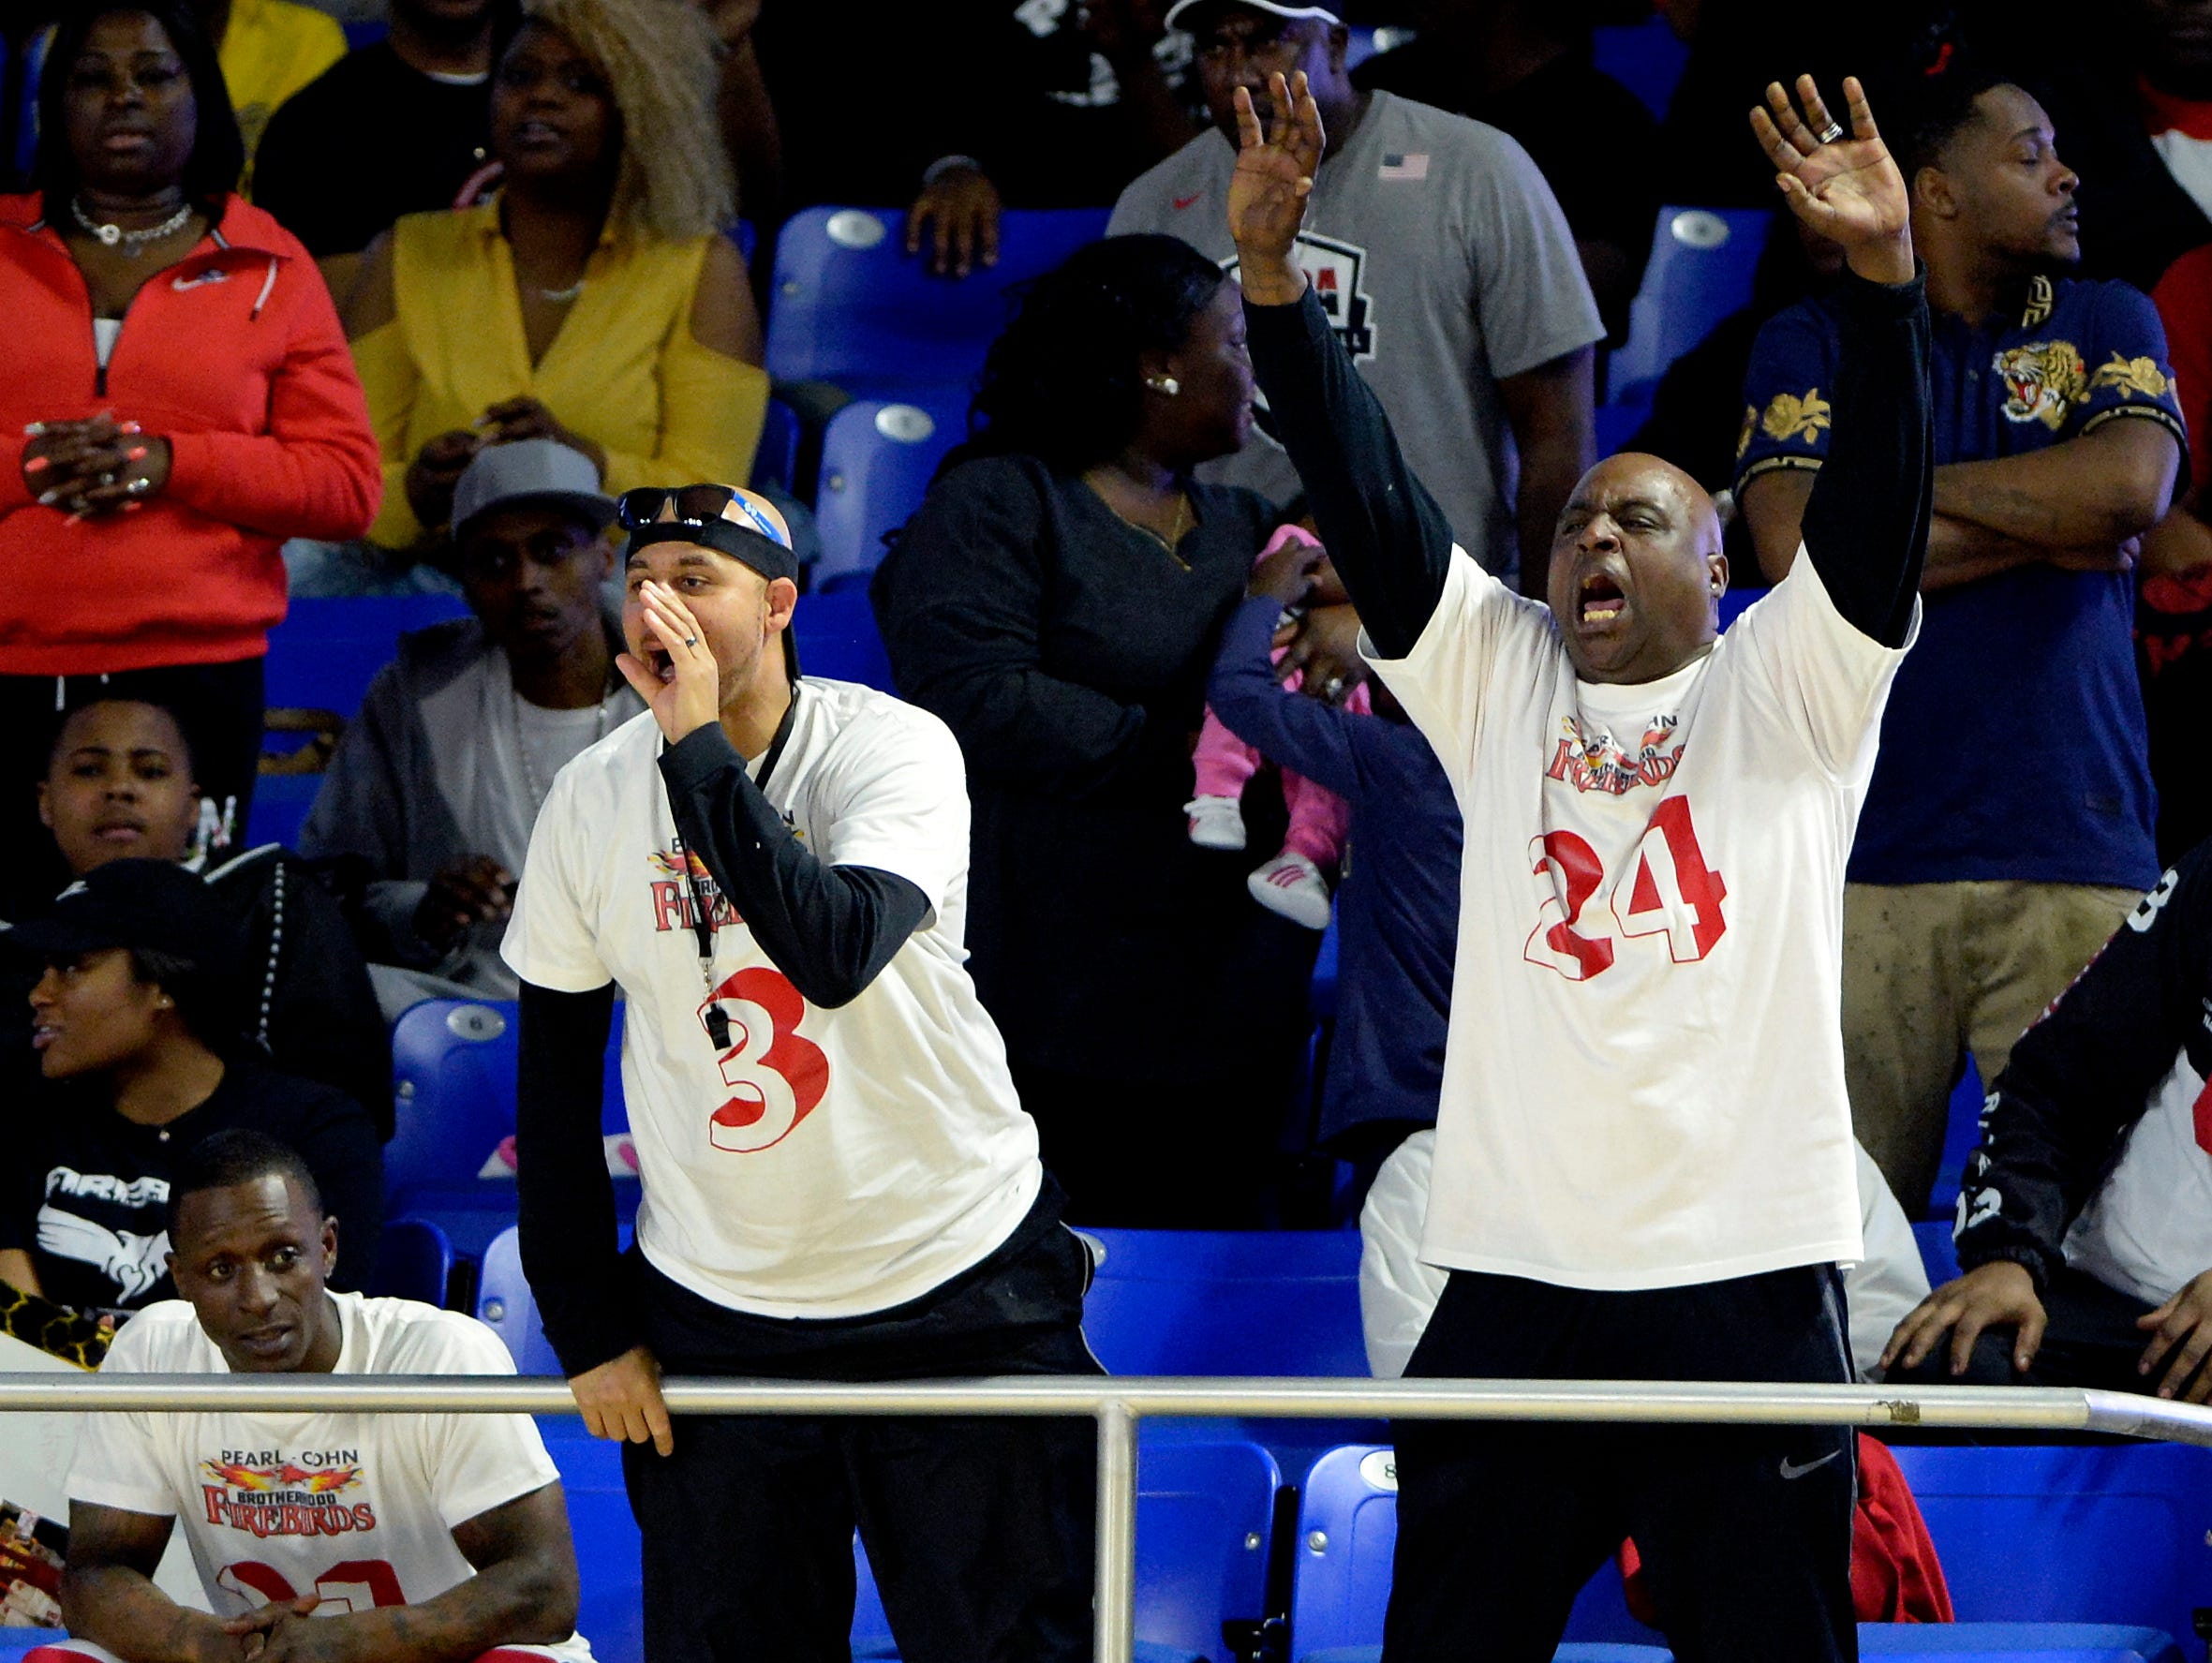 Pearl-Cohn fans cheer during the first half of an Class AA boys' state basketball quarterfinal game against Brainerd Wednesday, March 13, 2019, in Murfreesboro, Tenn.